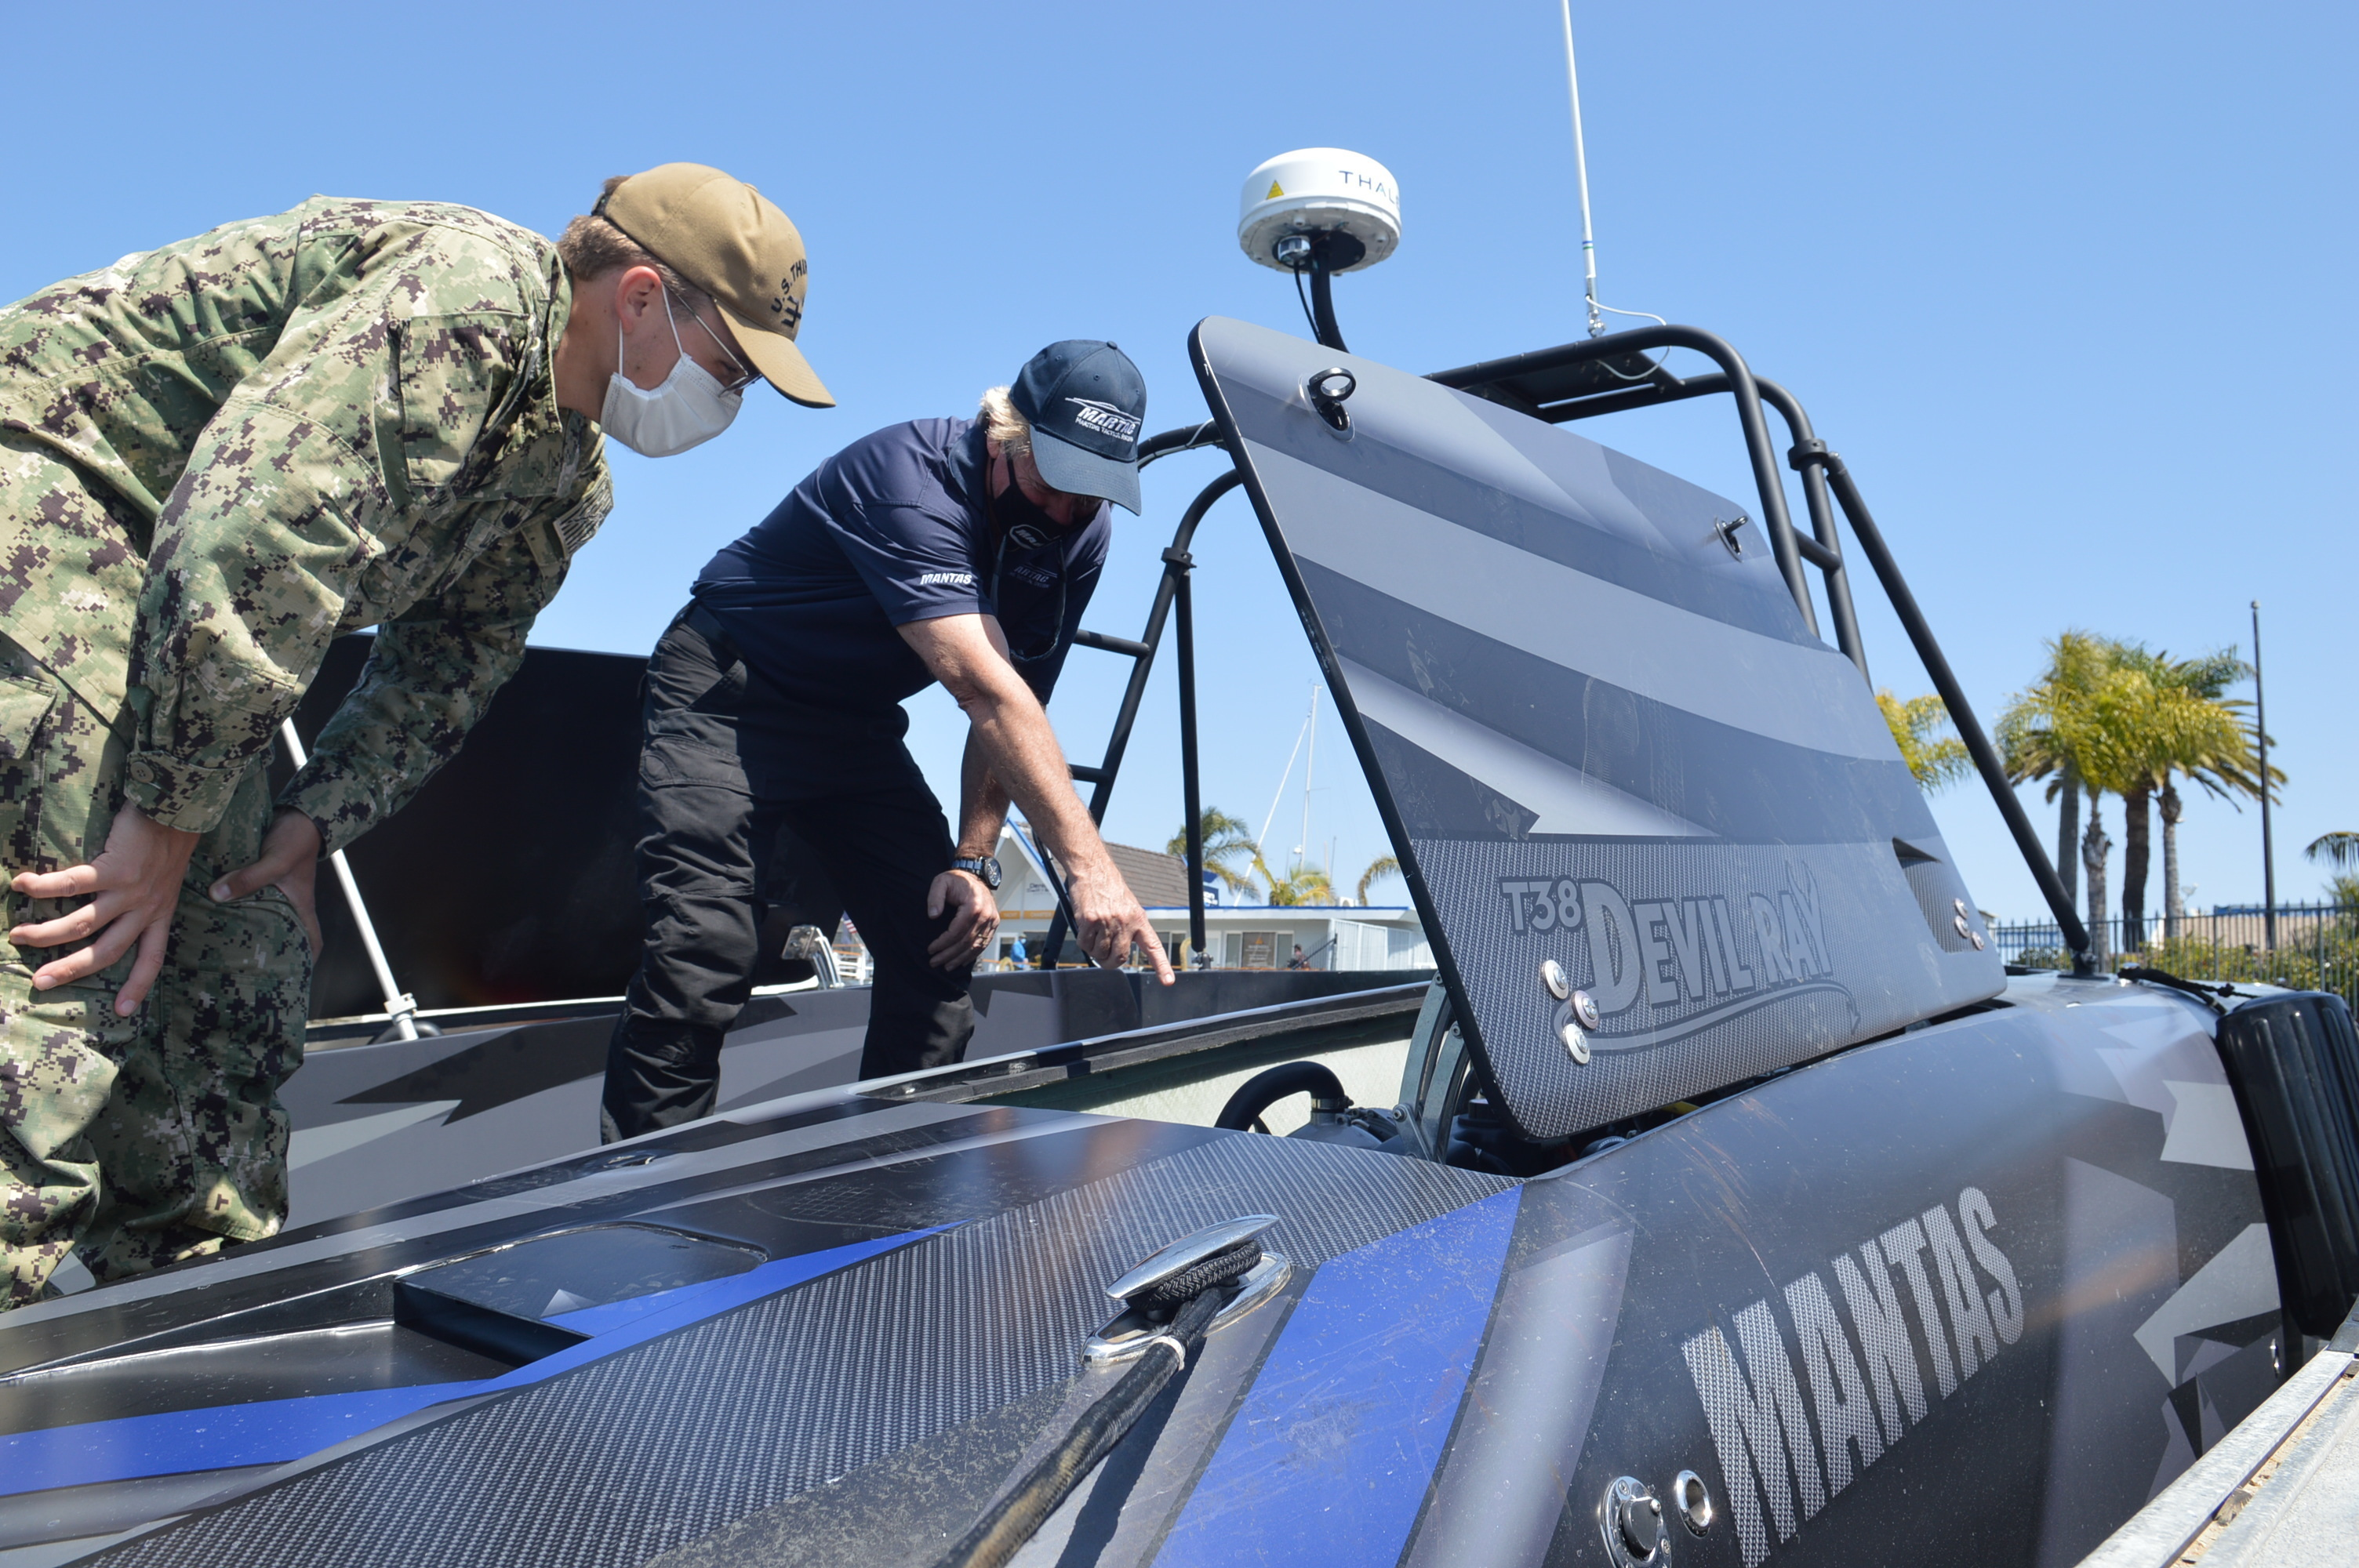 Petty Officer 3rd Class Casey Trietsch receives a tour and demonstration from Bruce Hanson aboard the MANTAS T38 Devil Ray unmanned surface vehicle.